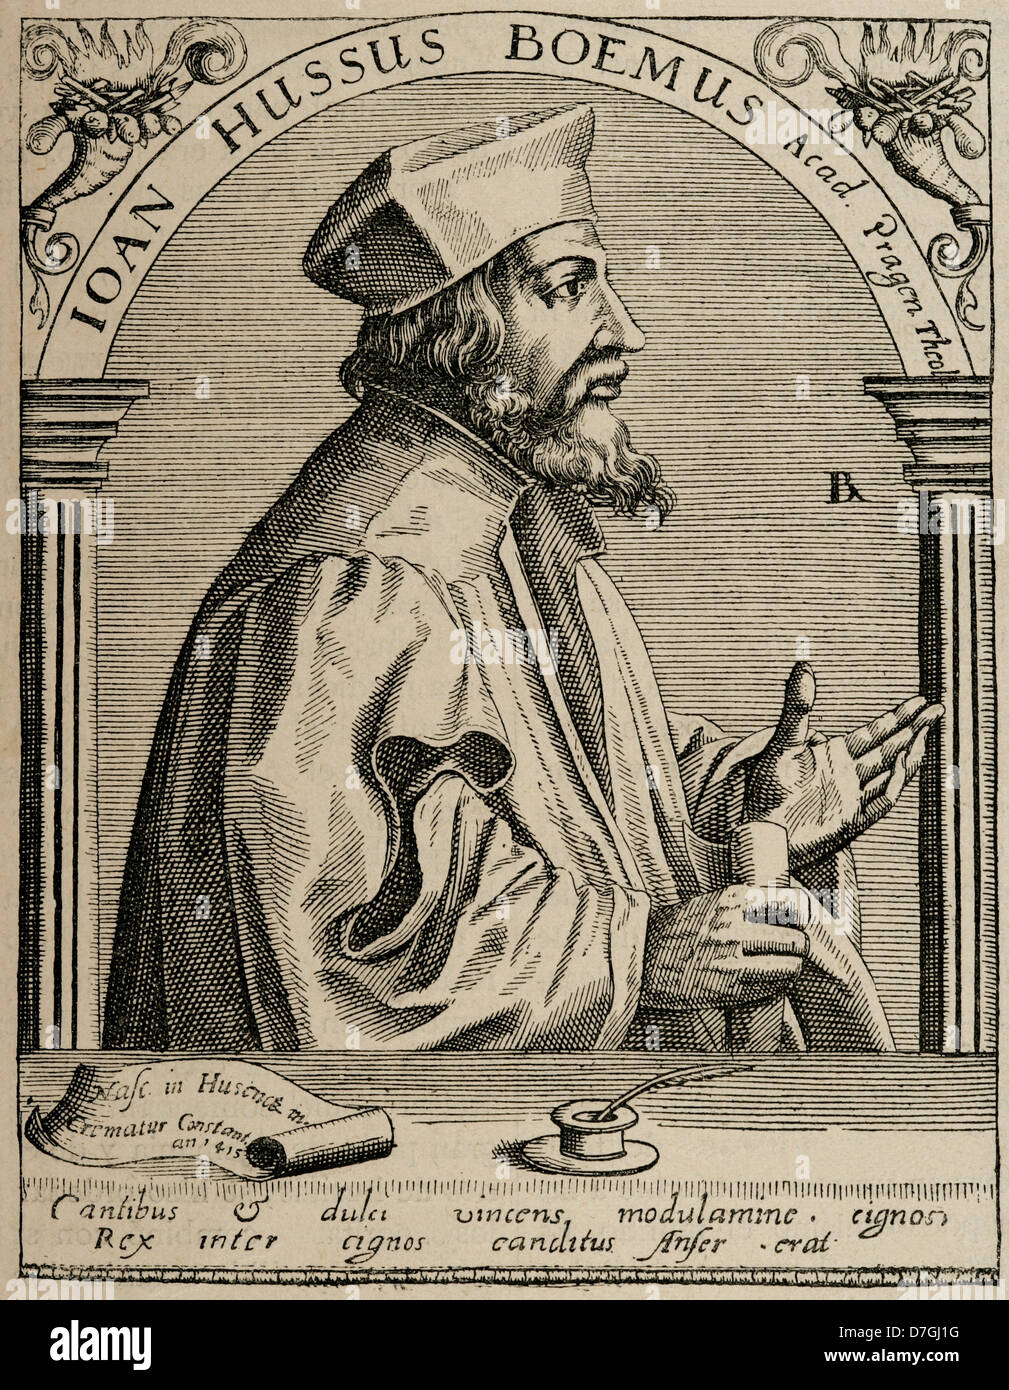 Jan Hus (1369-1415). Czech priest, philosopher and reformer. Engraving. - Stock Image